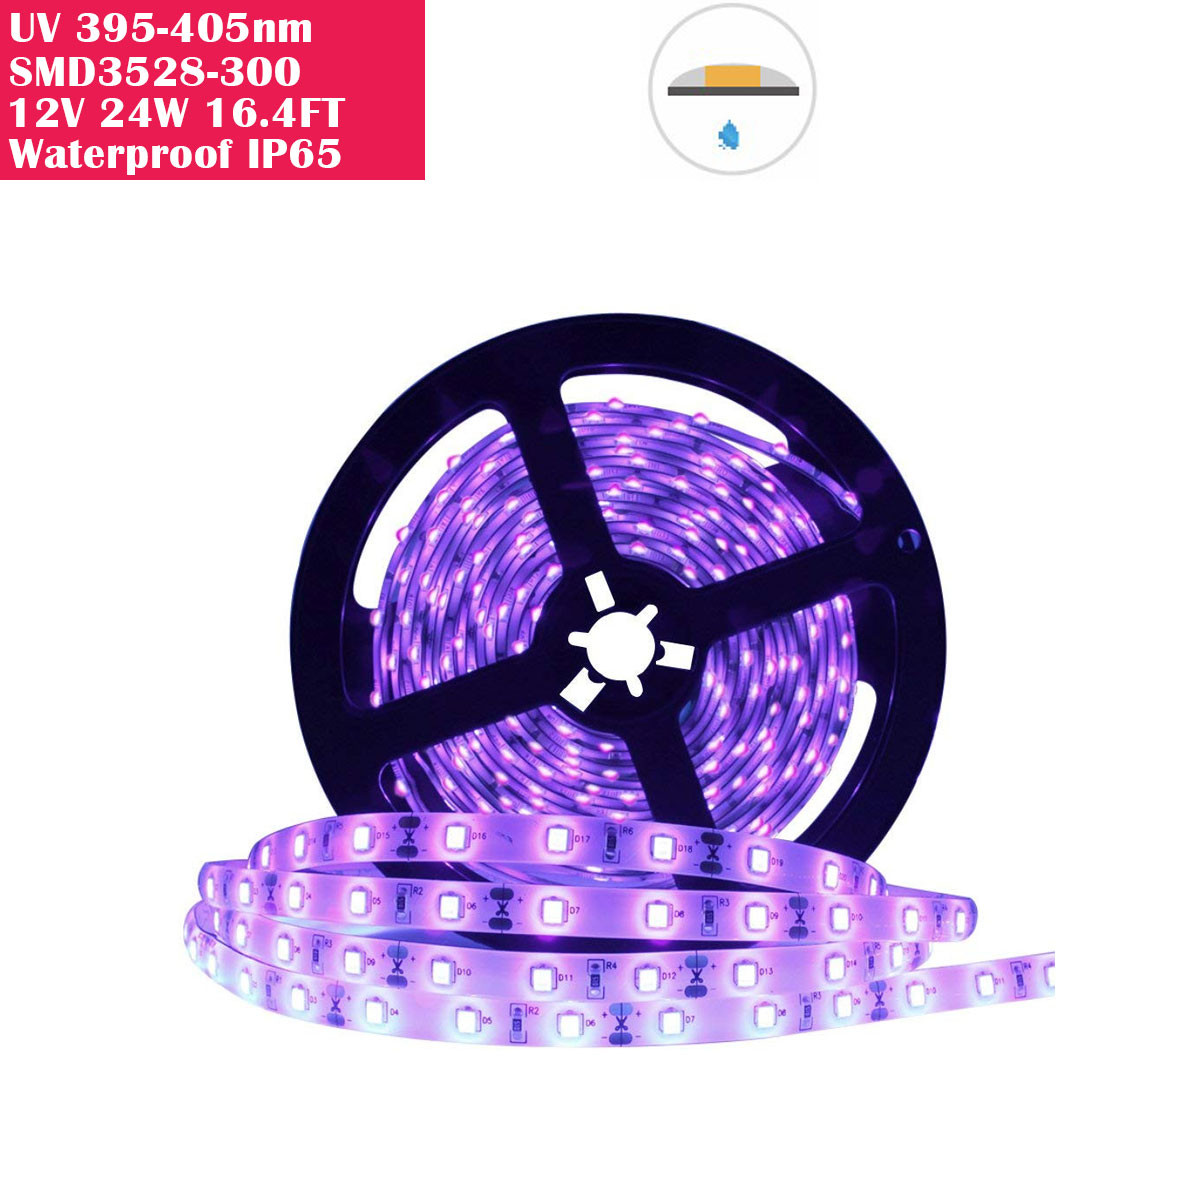 24 Watts UV Black Light LED Strip, 16.4FT/5M 3528 300LEDs 395nm-405nm Waterproof IP65 Blacklight Night Fishing Sterilization implicitly Party with 12V 2A Power Supply